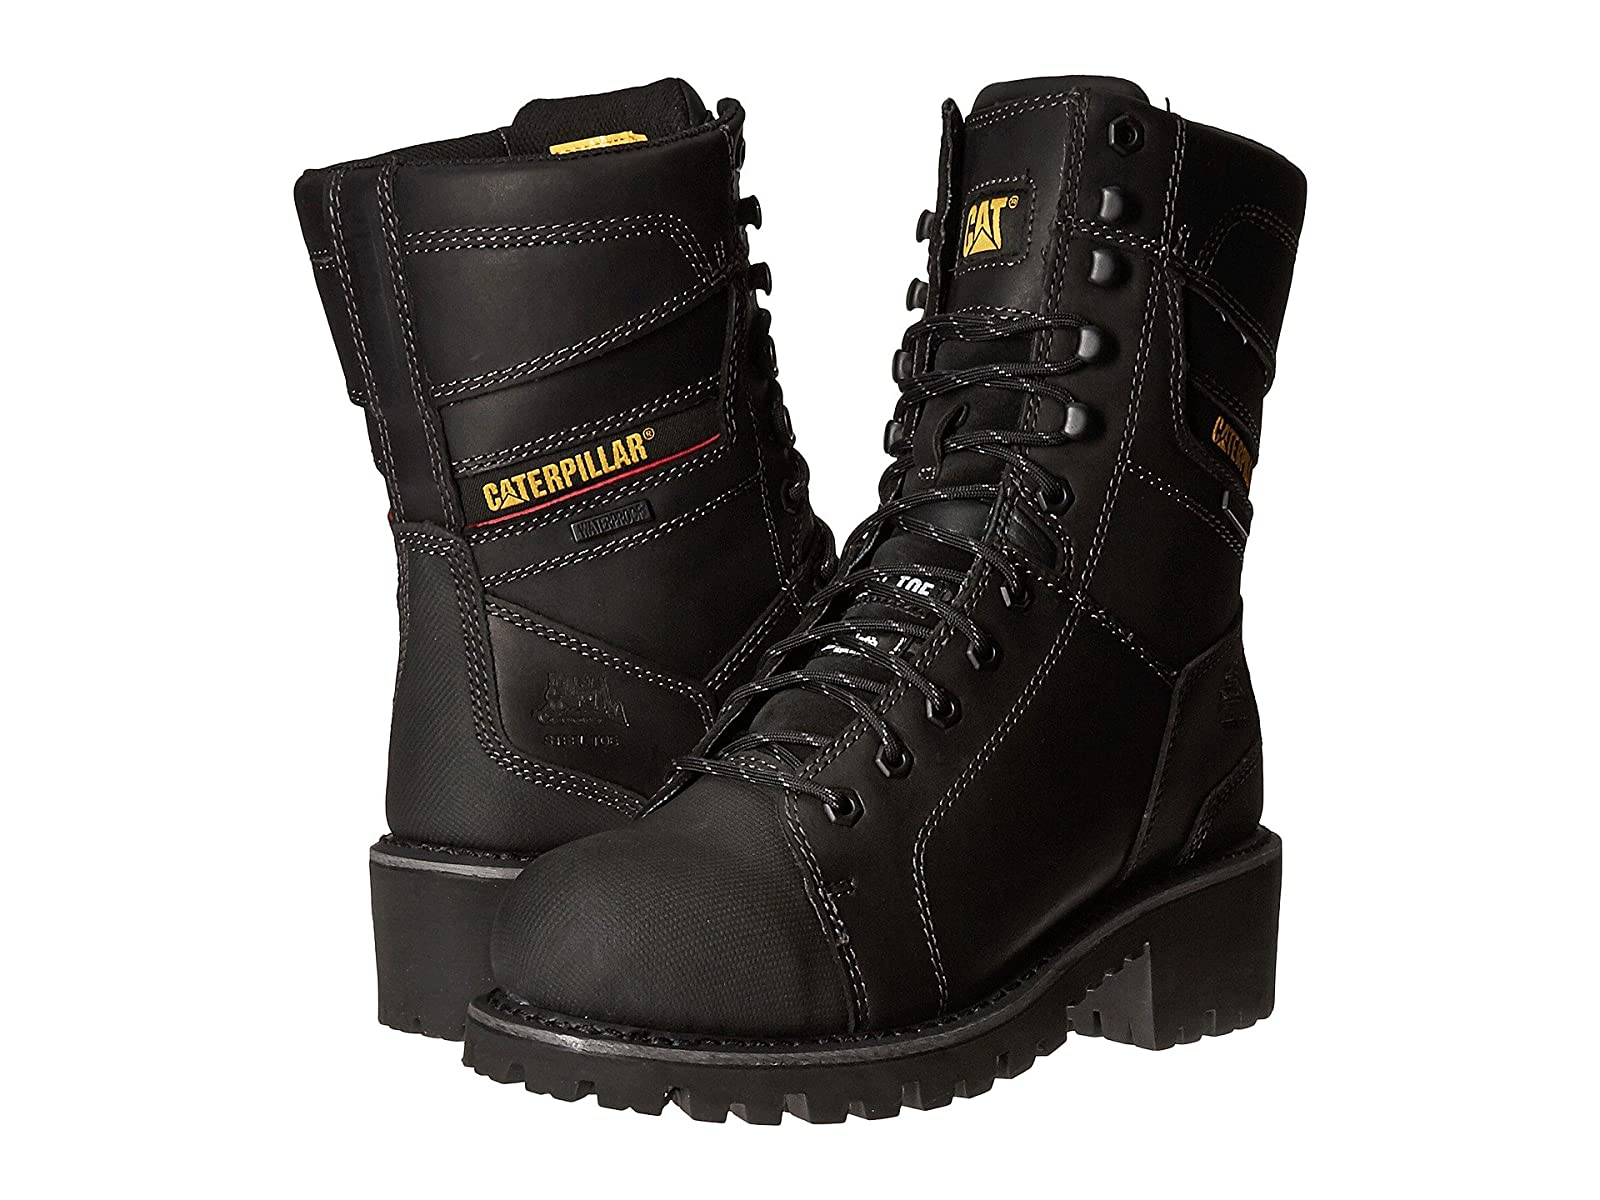 Caterpillar Casebolt Waterproof TX Steel ToeSelling fashionable and eye-catching shoes